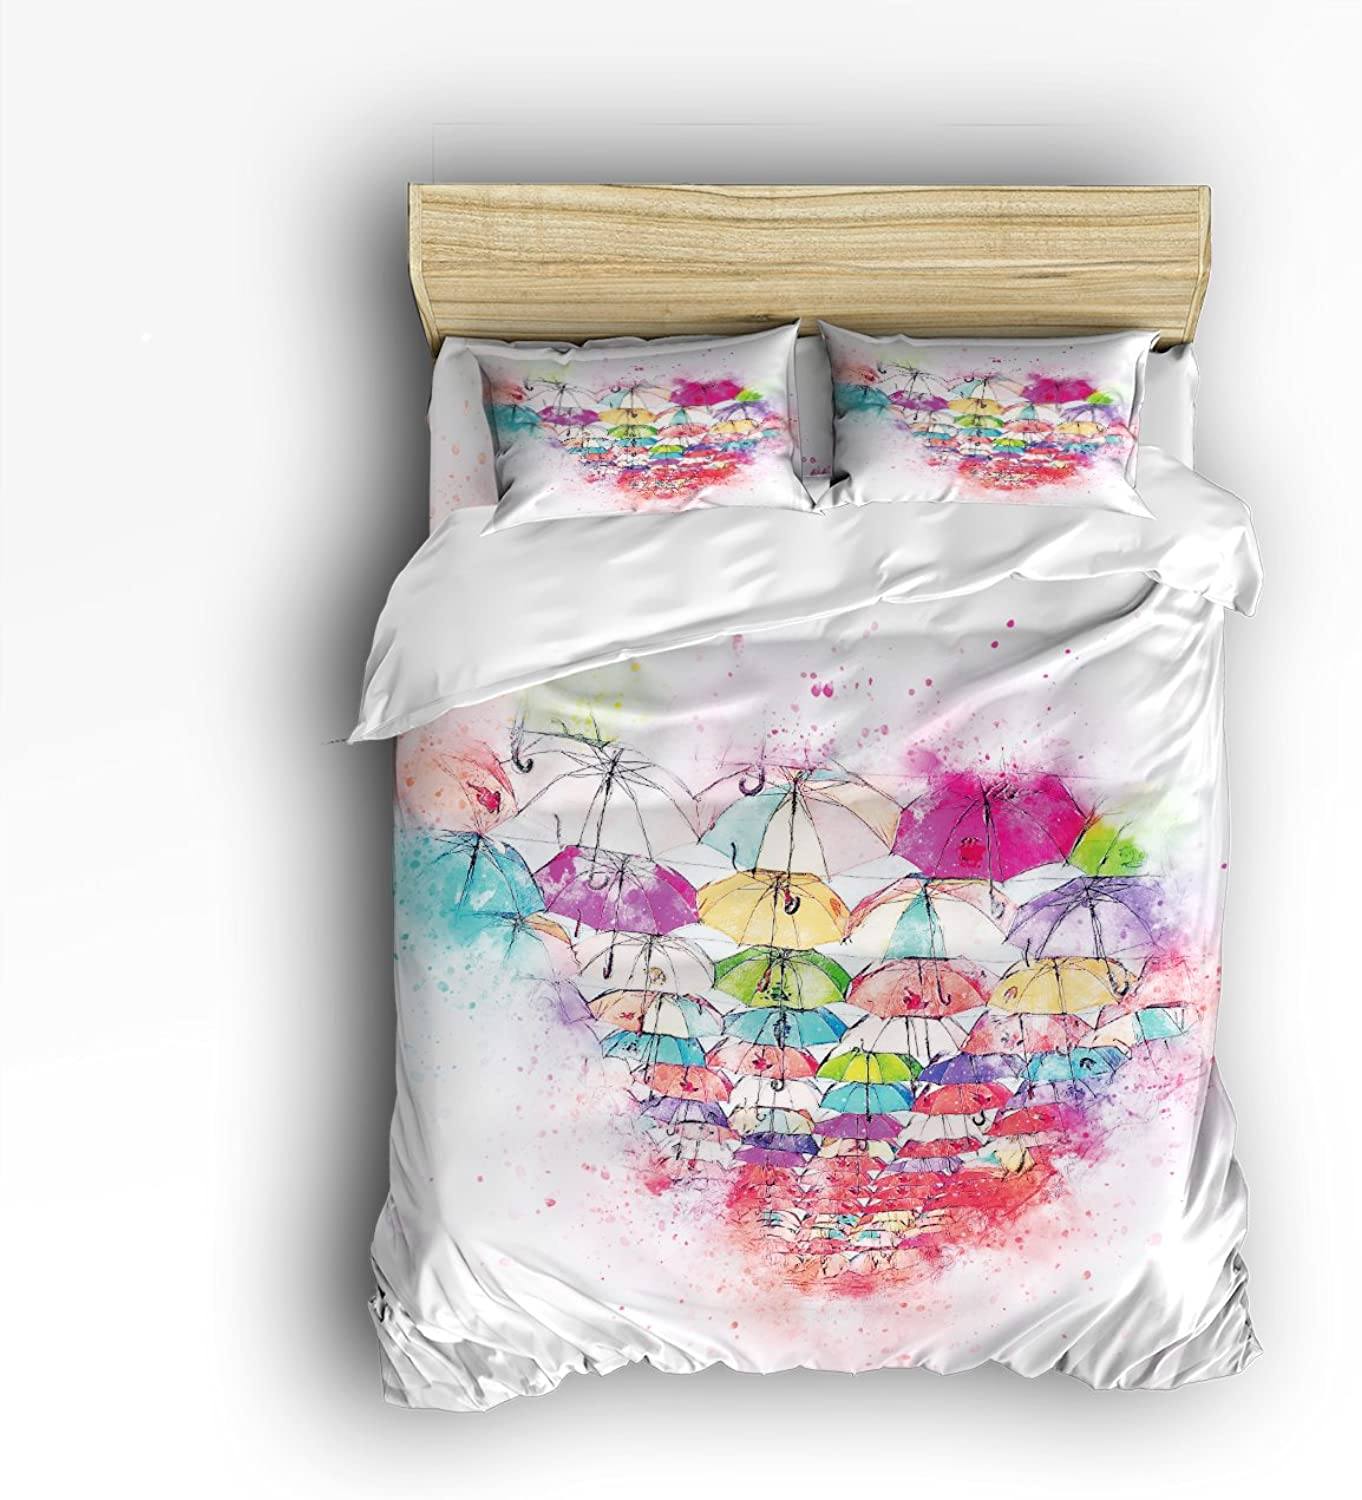 Libaoge 4 Piece Bed Sheets Set, colorful Umbrellas Watercolor Print, 1 Flat Sheet 1 Duvet Cover and 2 Pillow Cases